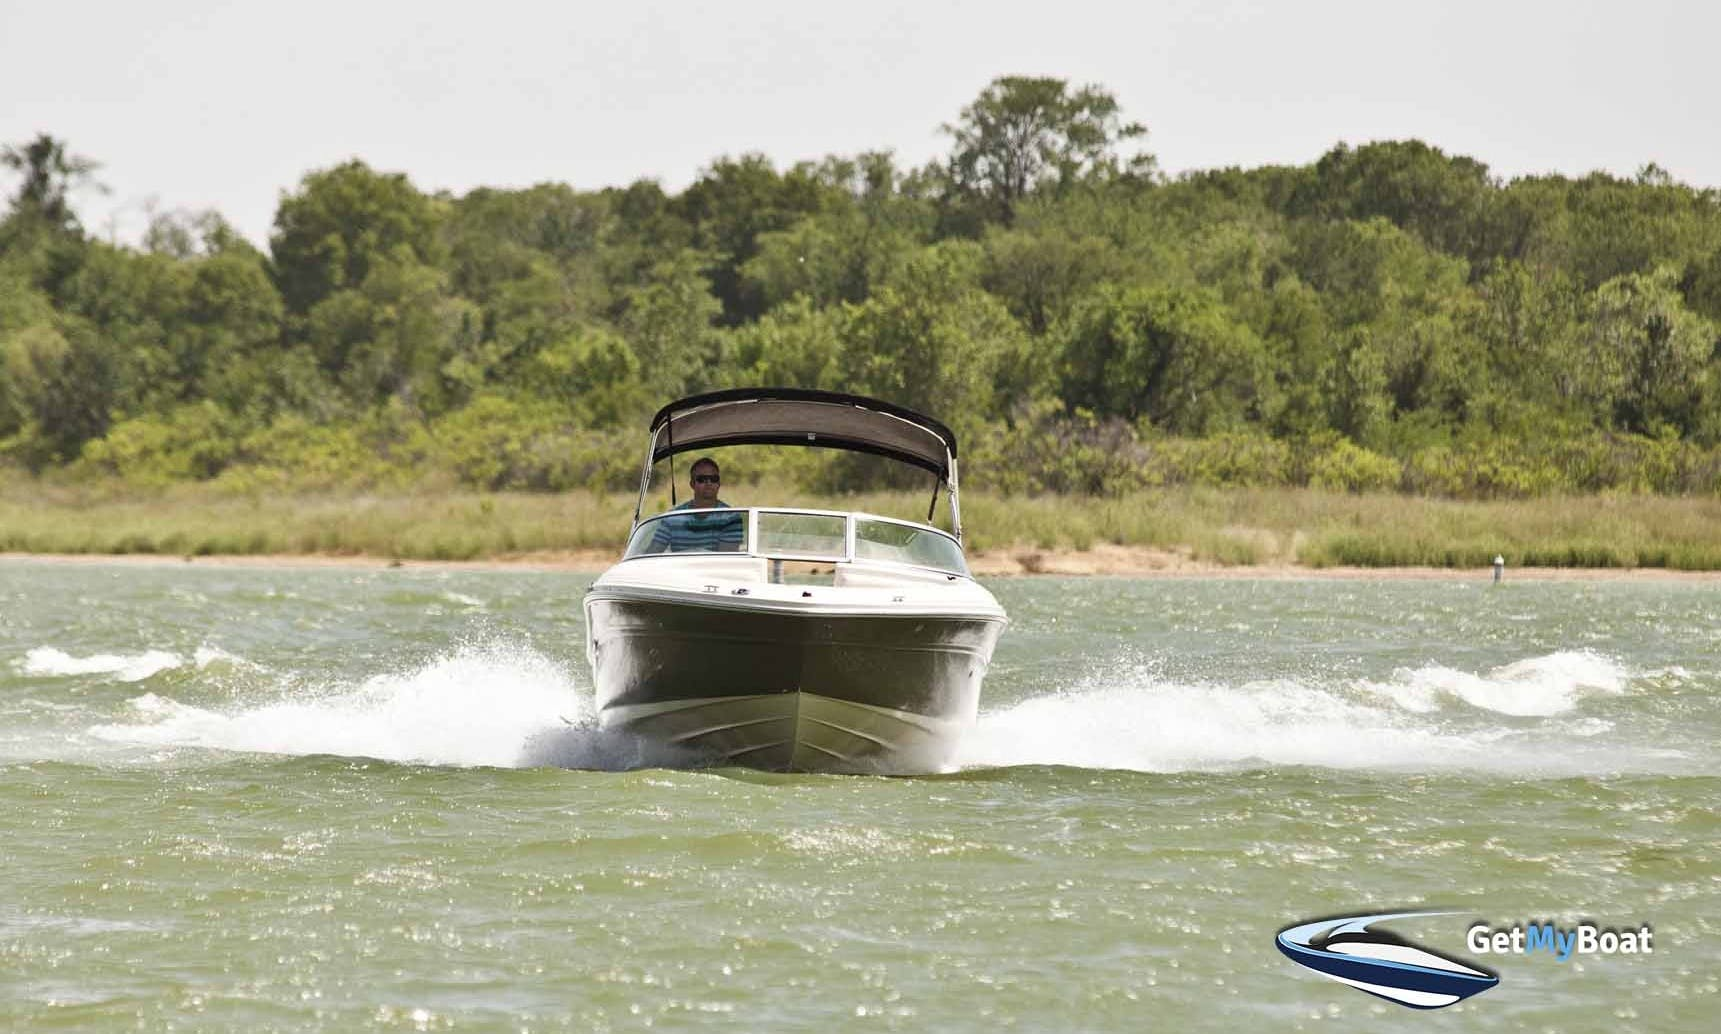 21' Sea Ray Ski/Wakeboard Boat for Rent near Lake Lewisville TX Tow and Go Option